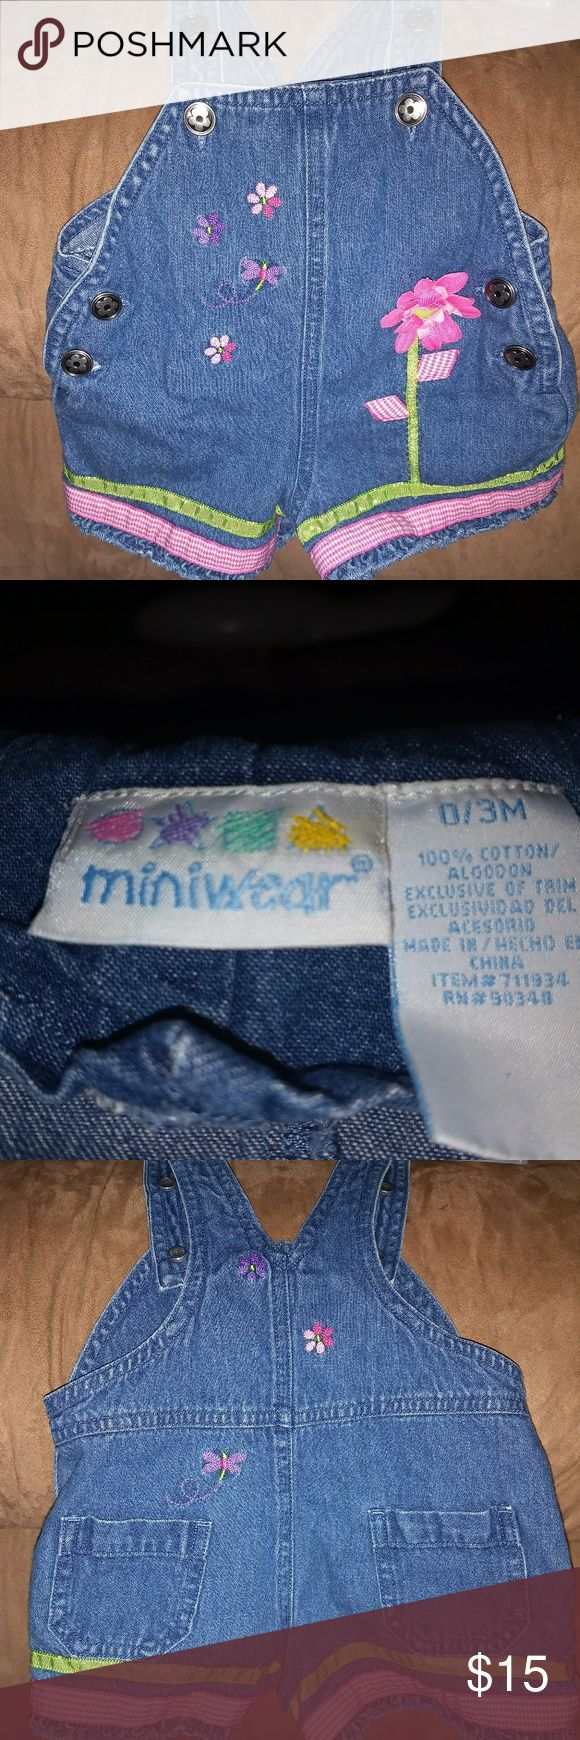 Little girl's short overalls. Adorable little girl's short overalls with flower design on front. Creat condition with no holes or stains. Comes from smoke free home. miniwear One Pieces